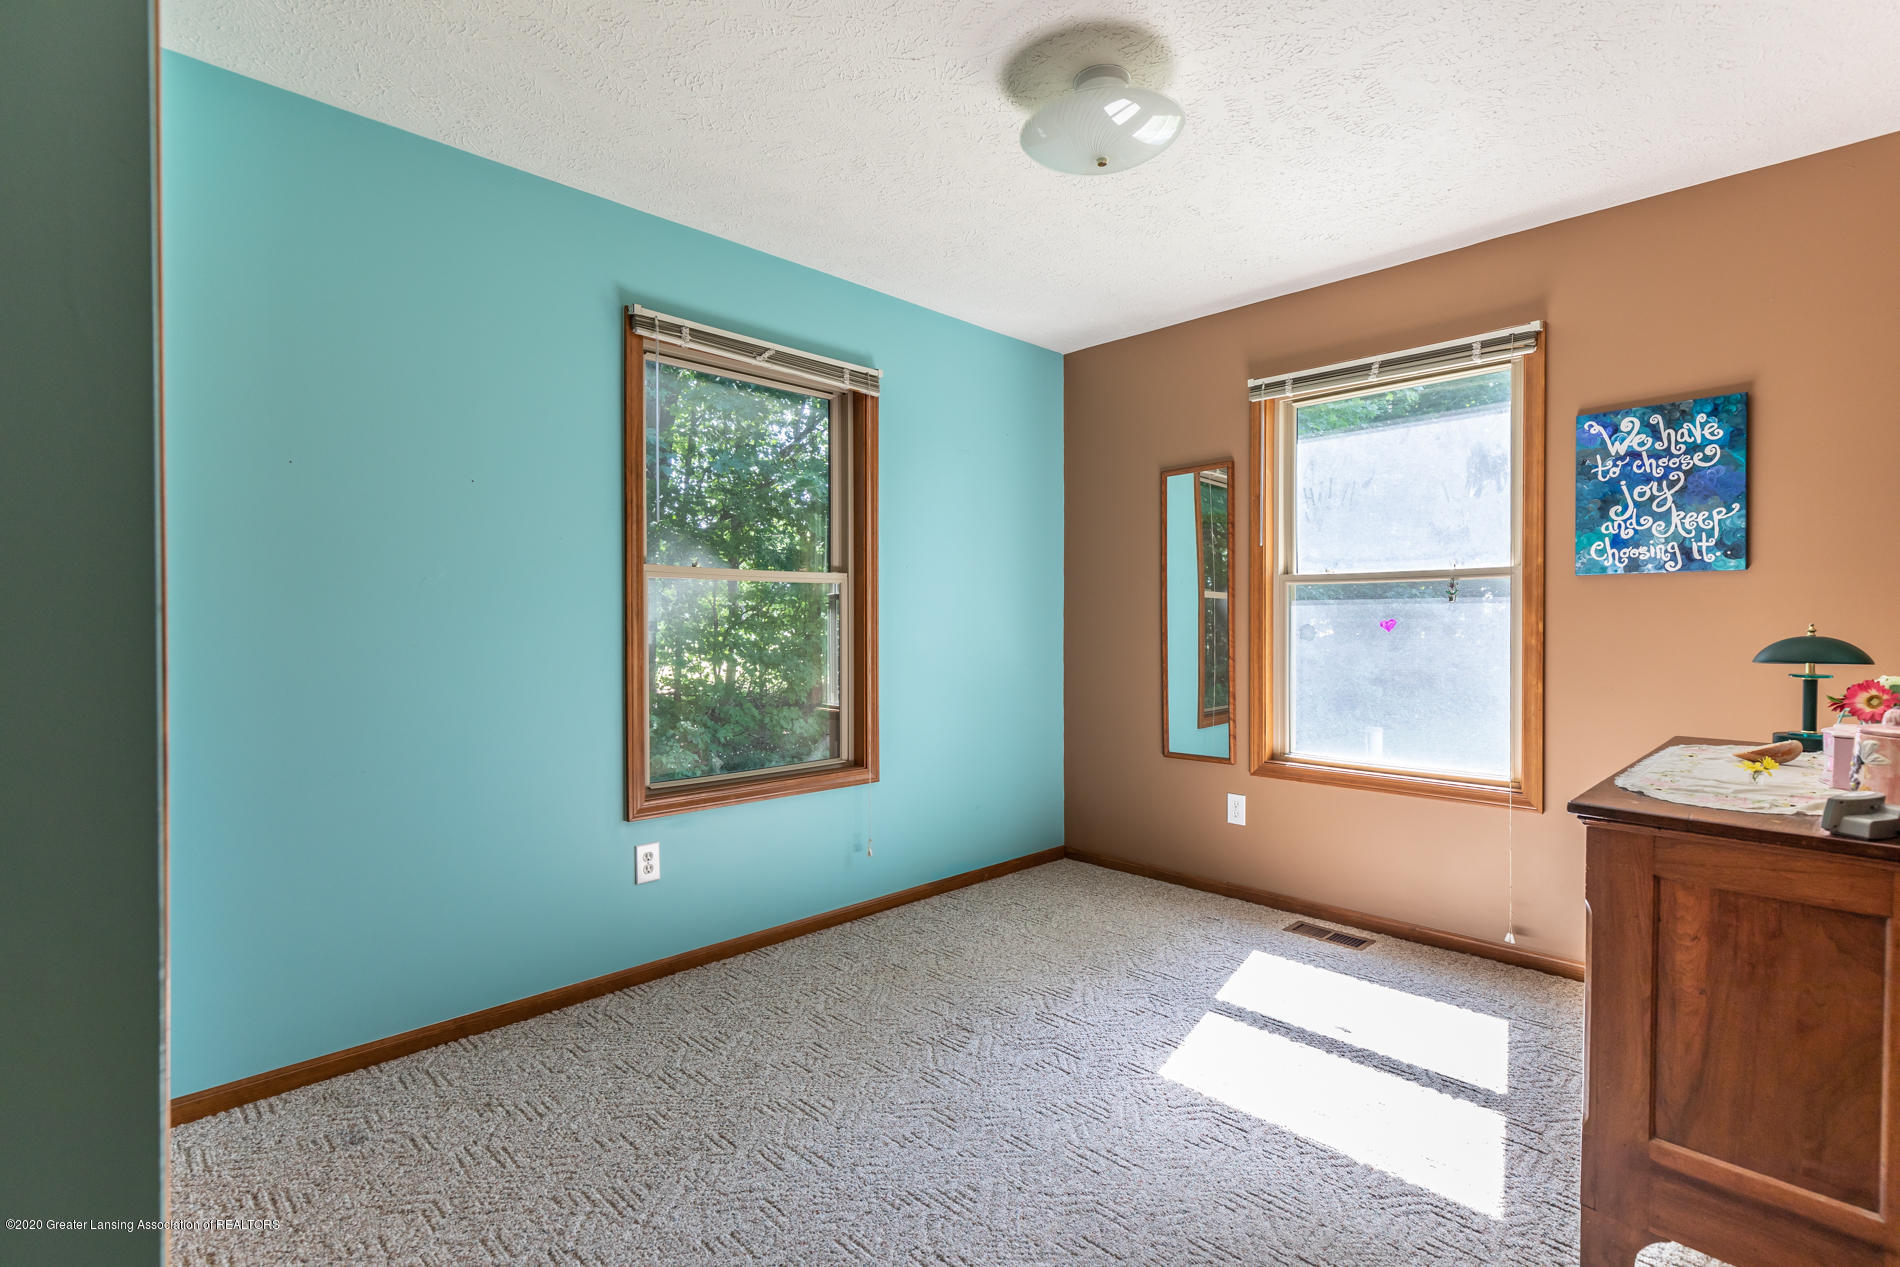 2229 S Chester Rd - Bedroom view - 16